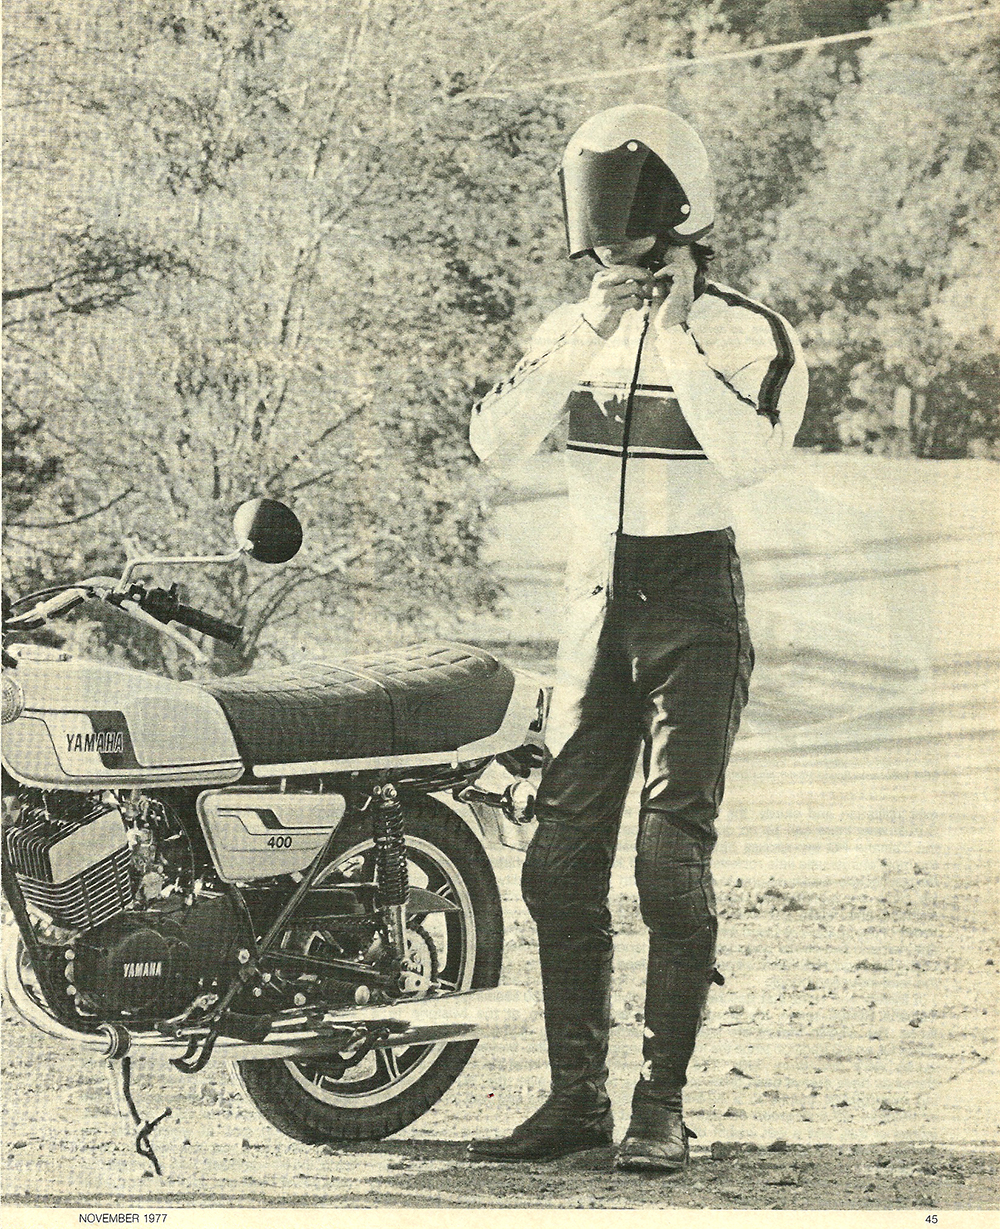 1977 Yamaha RD400E road test 2.jpg